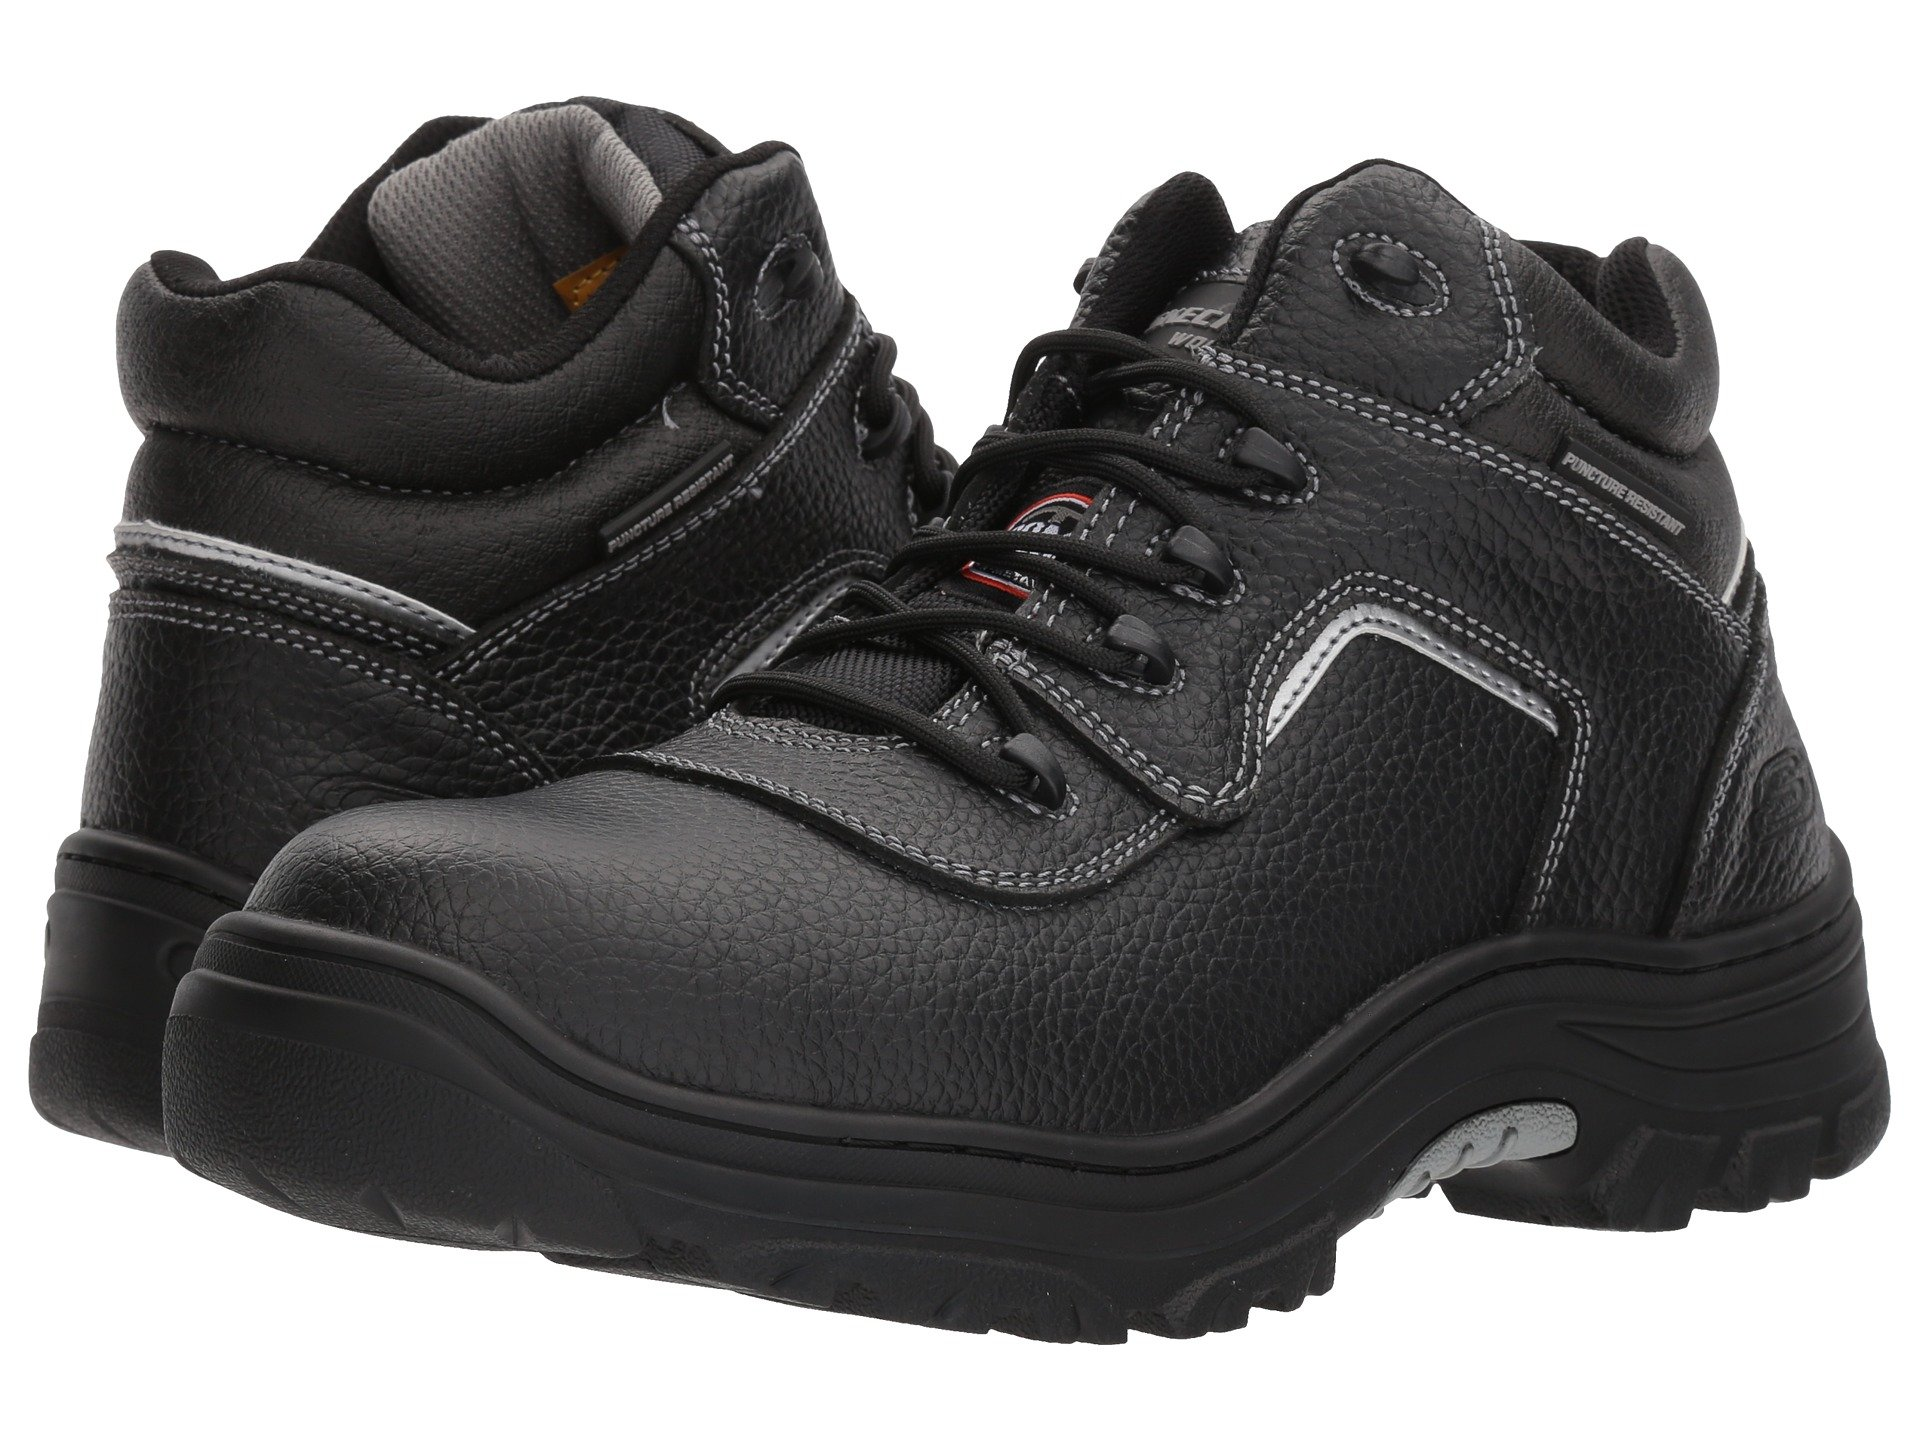 sketcher black mens boots